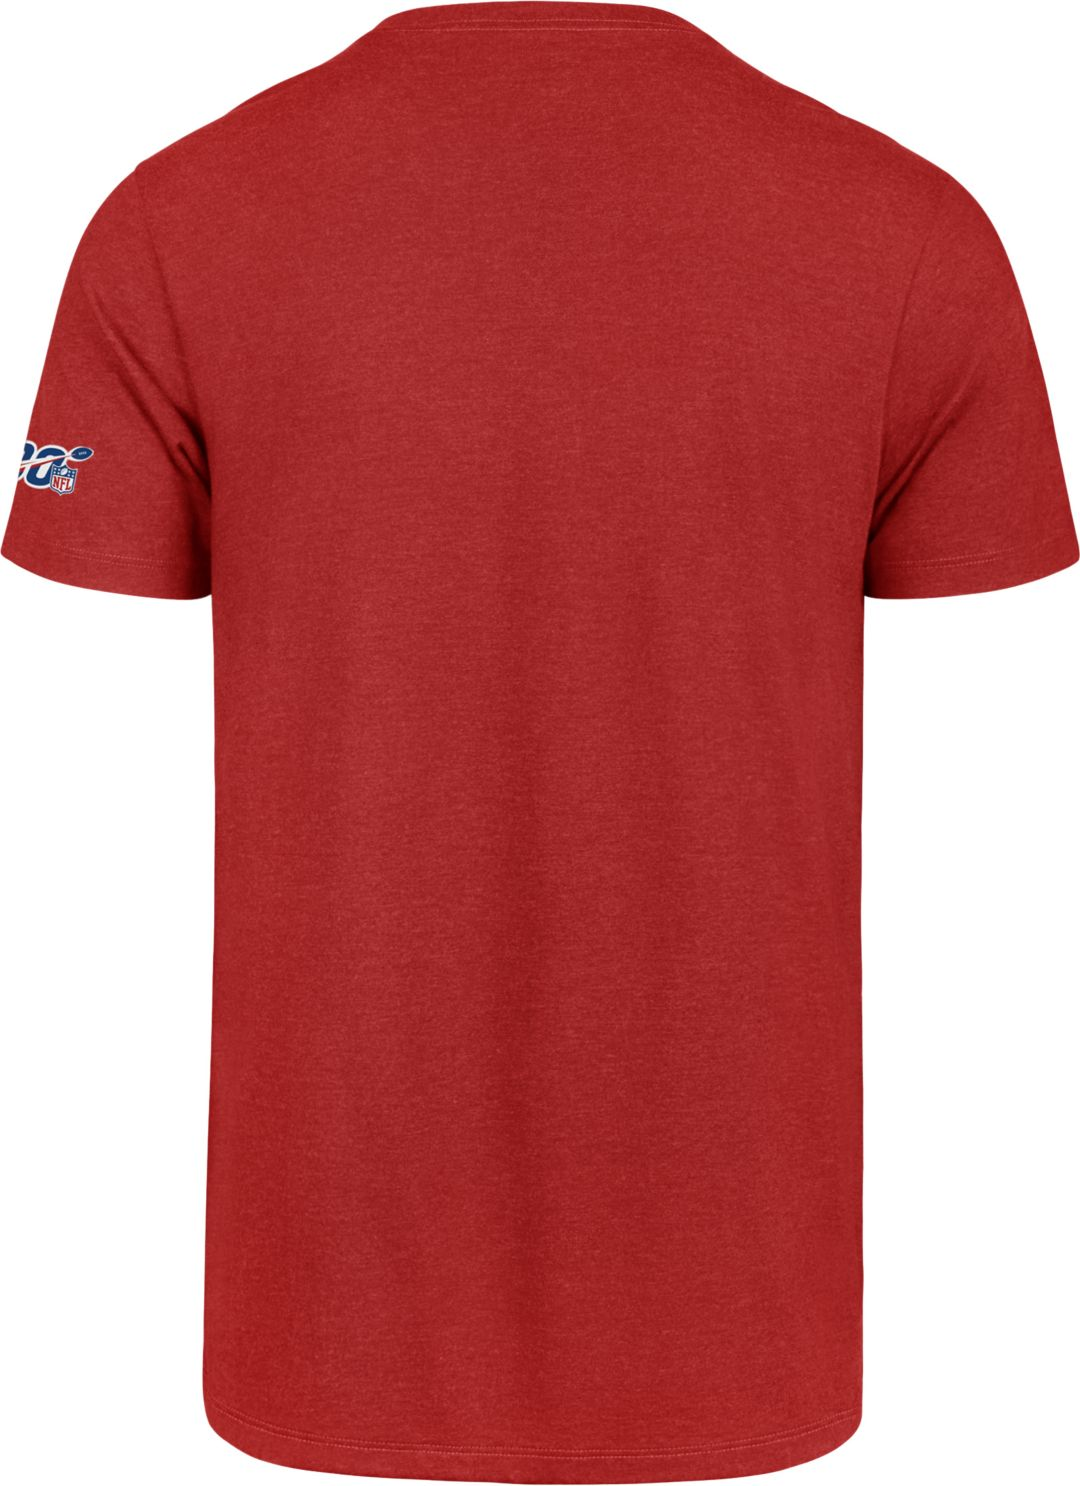 the best attitude 81ee6 36353 '47 Men's New England Patriots 100th Club Throwback Red T-Shirt